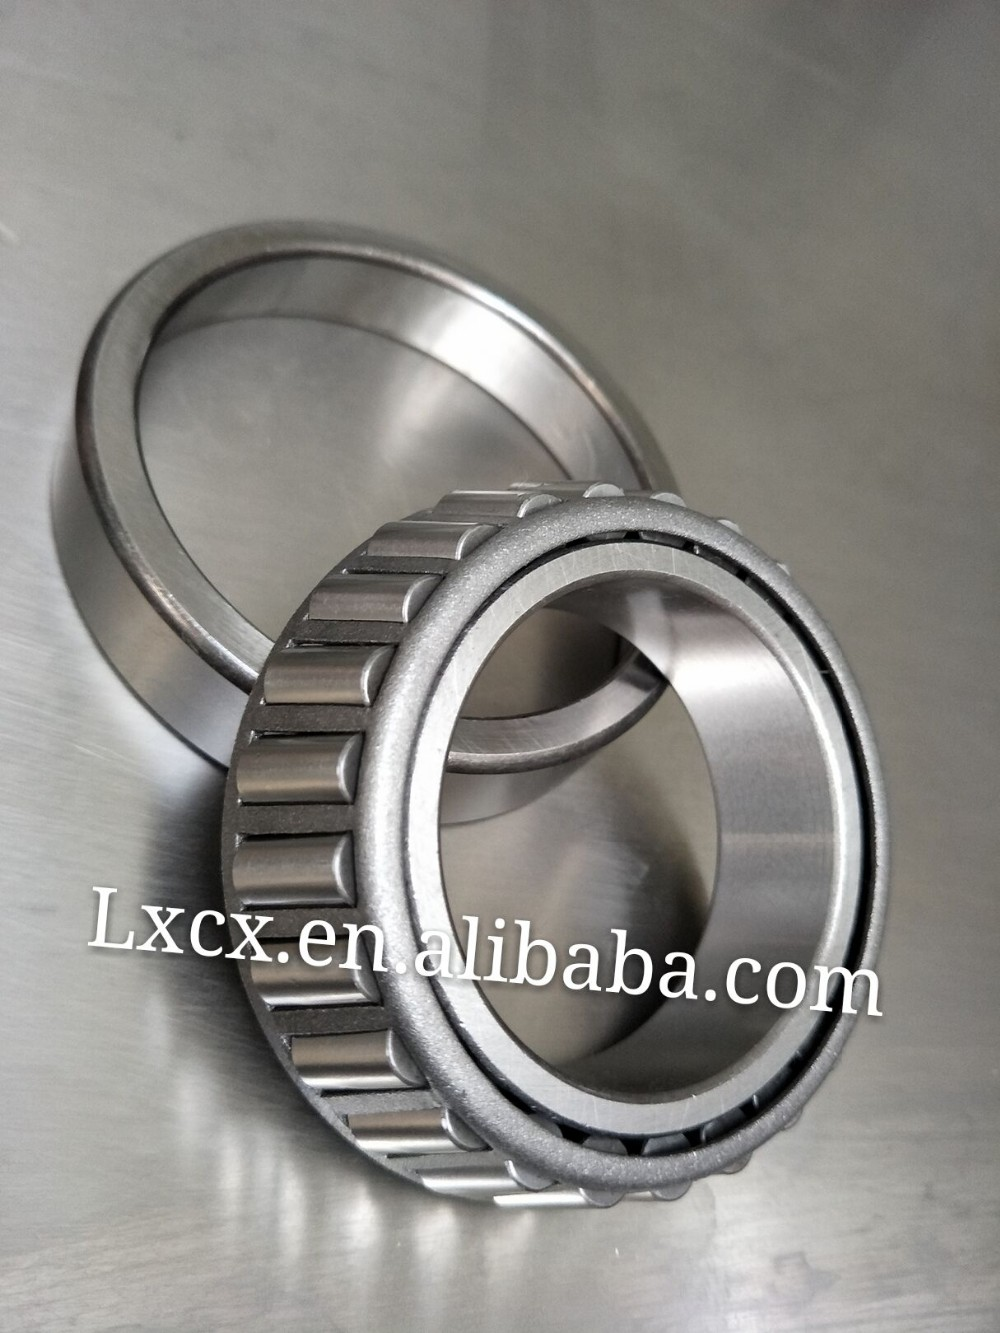 High Quality Low price Single row Taper Roller Bearing 31319(95*200*50)mm Manufacture factory OEM